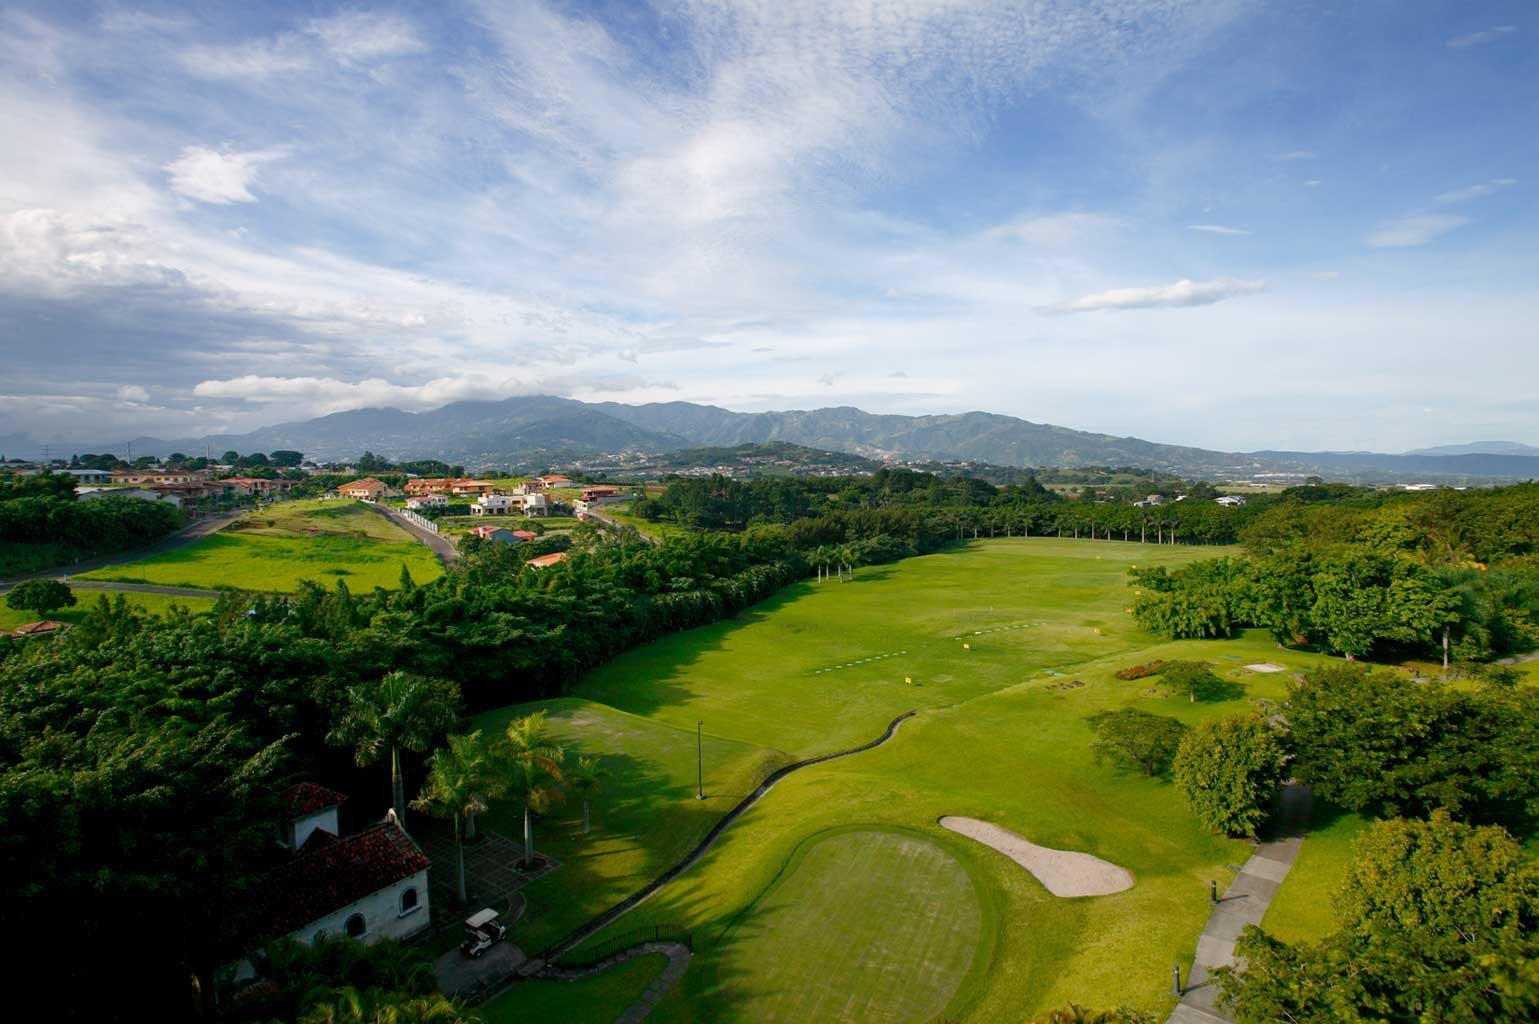 Cultural Natural wonders Scenic views sky grass structure Nature hill aerial photography sport venue green golf course field plain mountain rural area landscape golf club grassy lush meadow plateau valley hillside overlooking highland